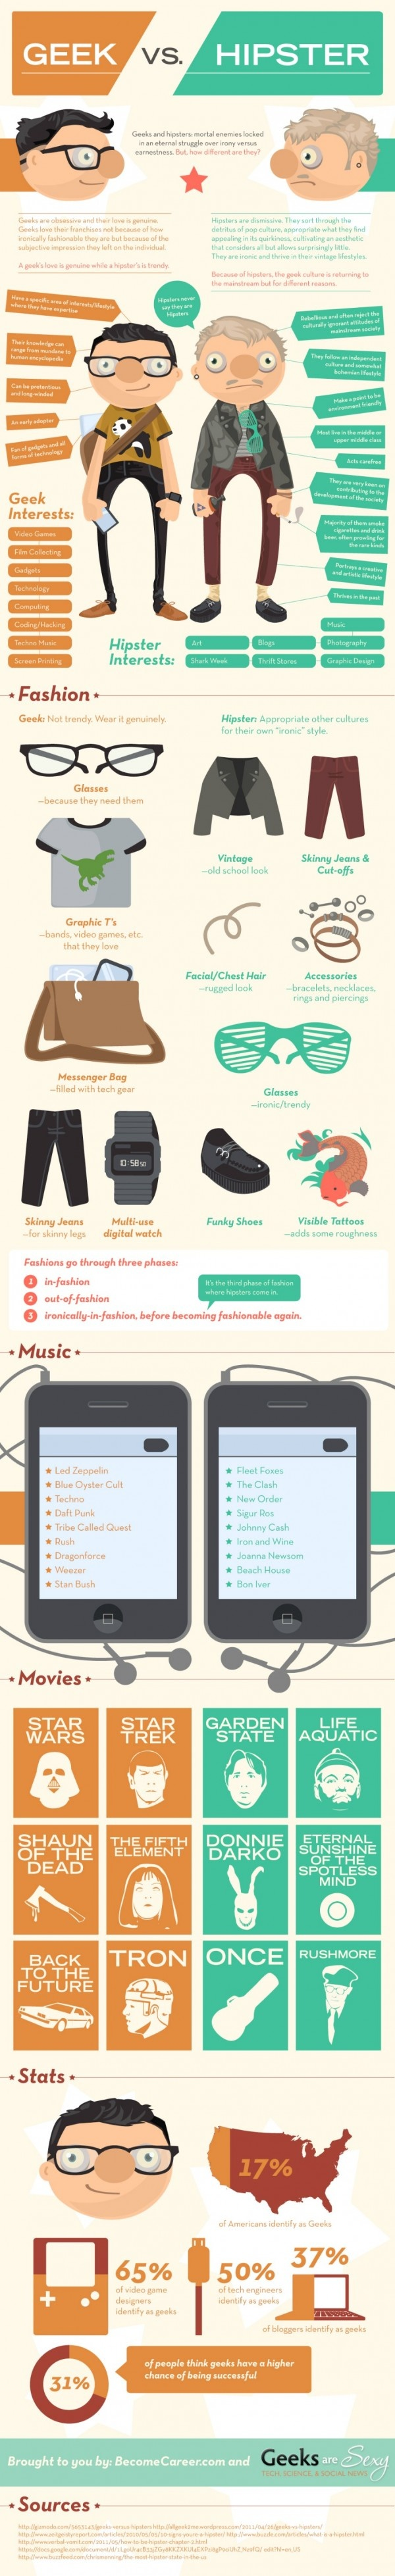 Geek vs Hipster !!!  Hahaha Now i know what a hipster is! Soo a geek. Lol especially on the movie side!